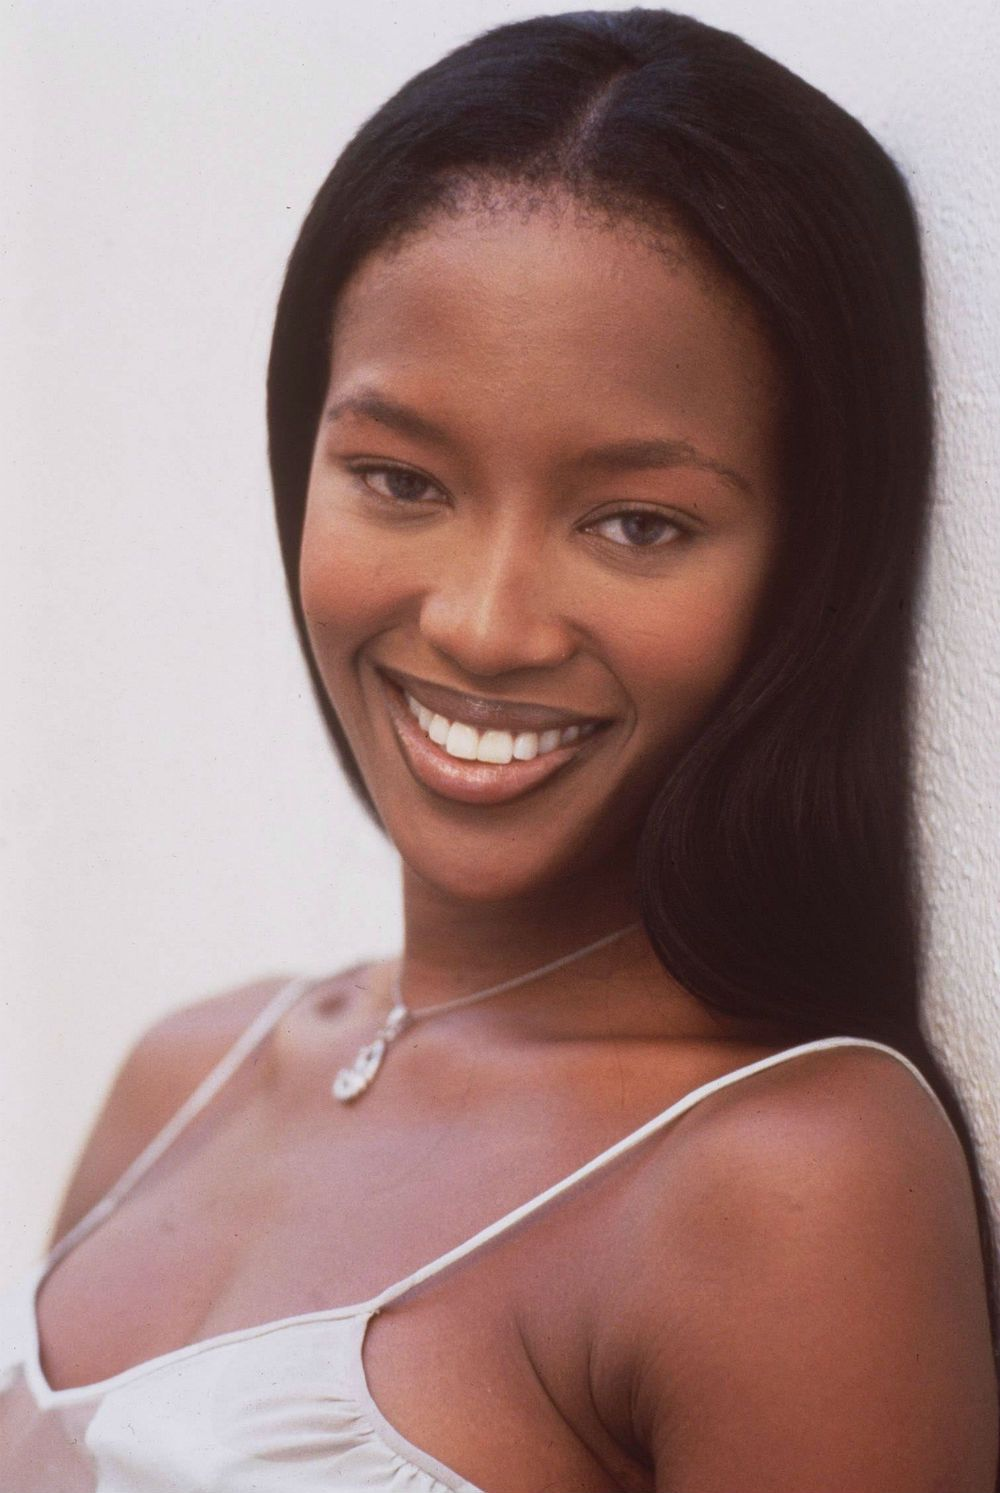 90s make-up looks we can't wait to try this summer – NBGA